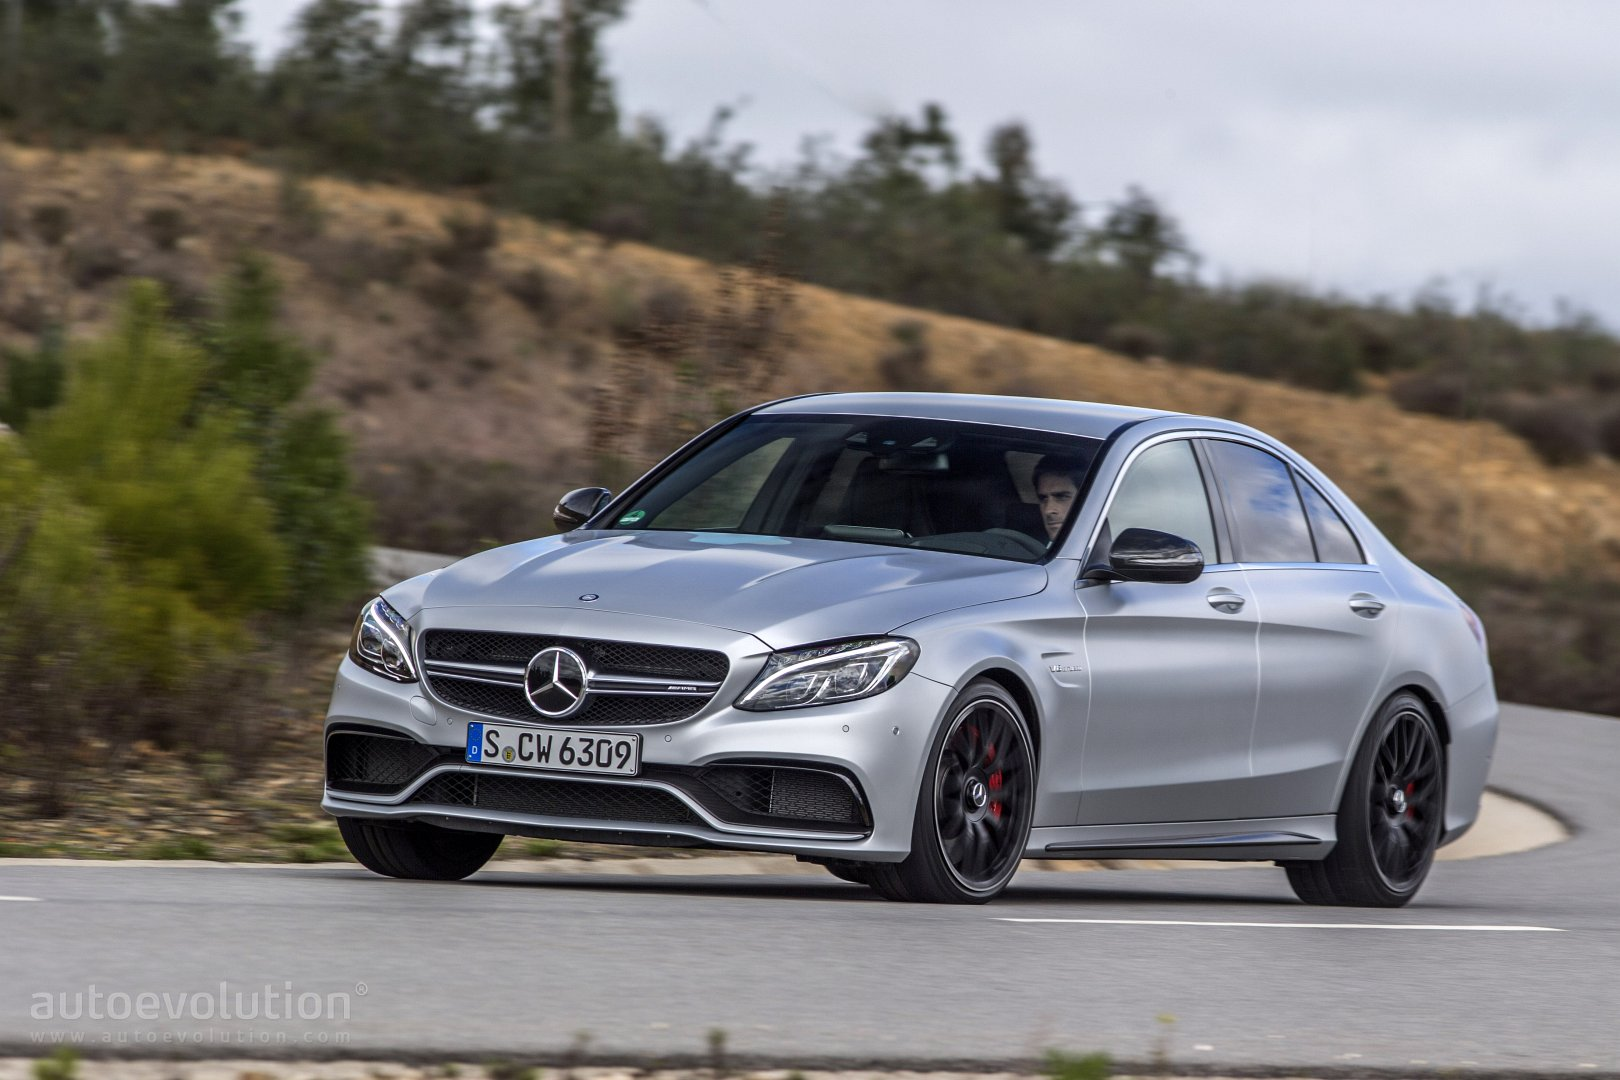 2016 mercedes amg c63 review autoevolution. Black Bedroom Furniture Sets. Home Design Ideas